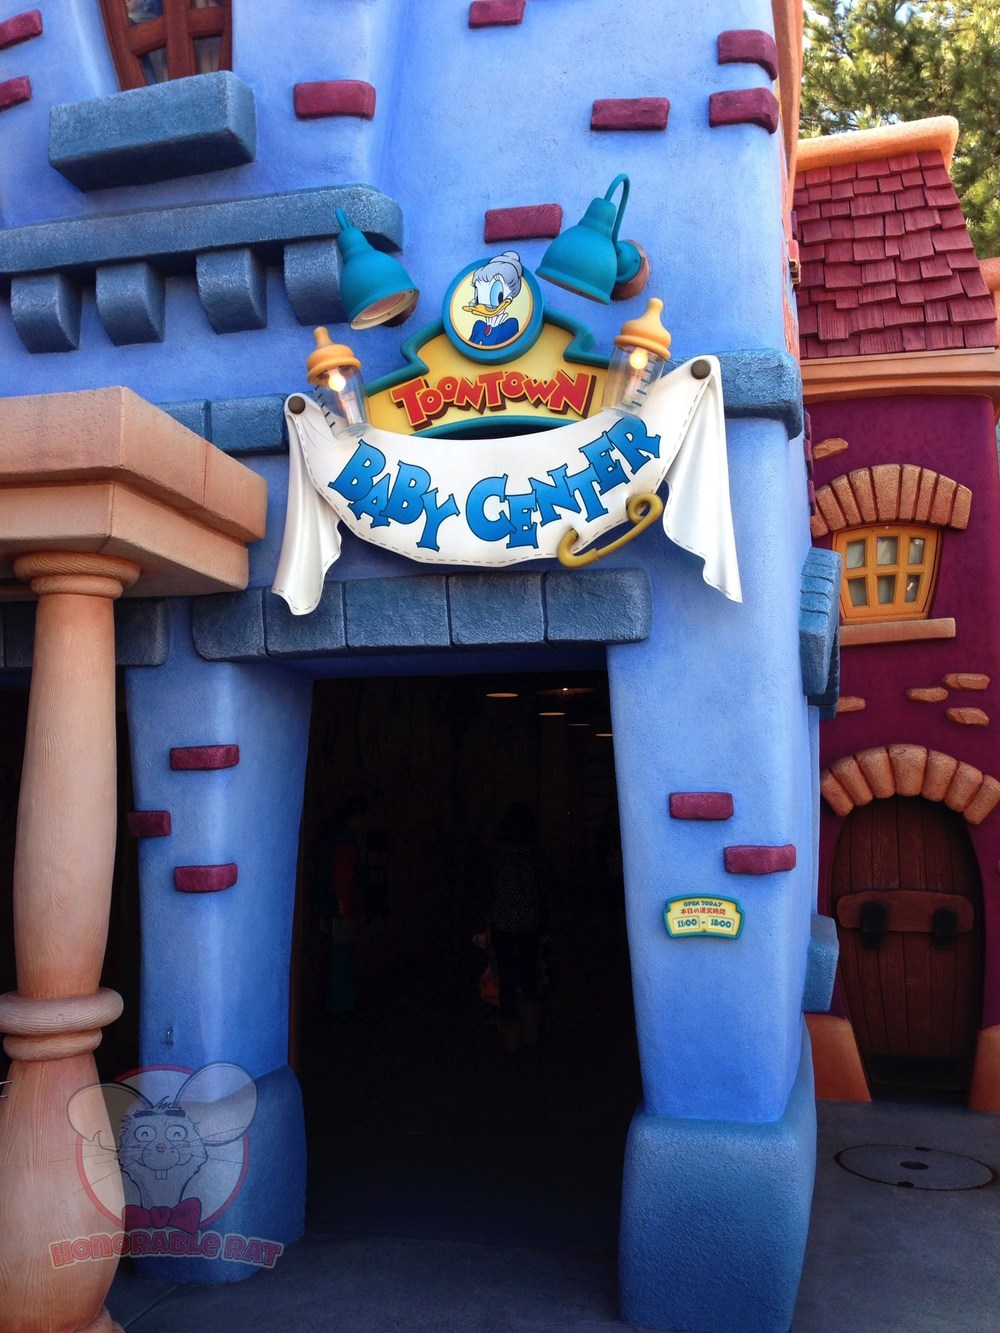 Toontown's Baby Care Center entrance.